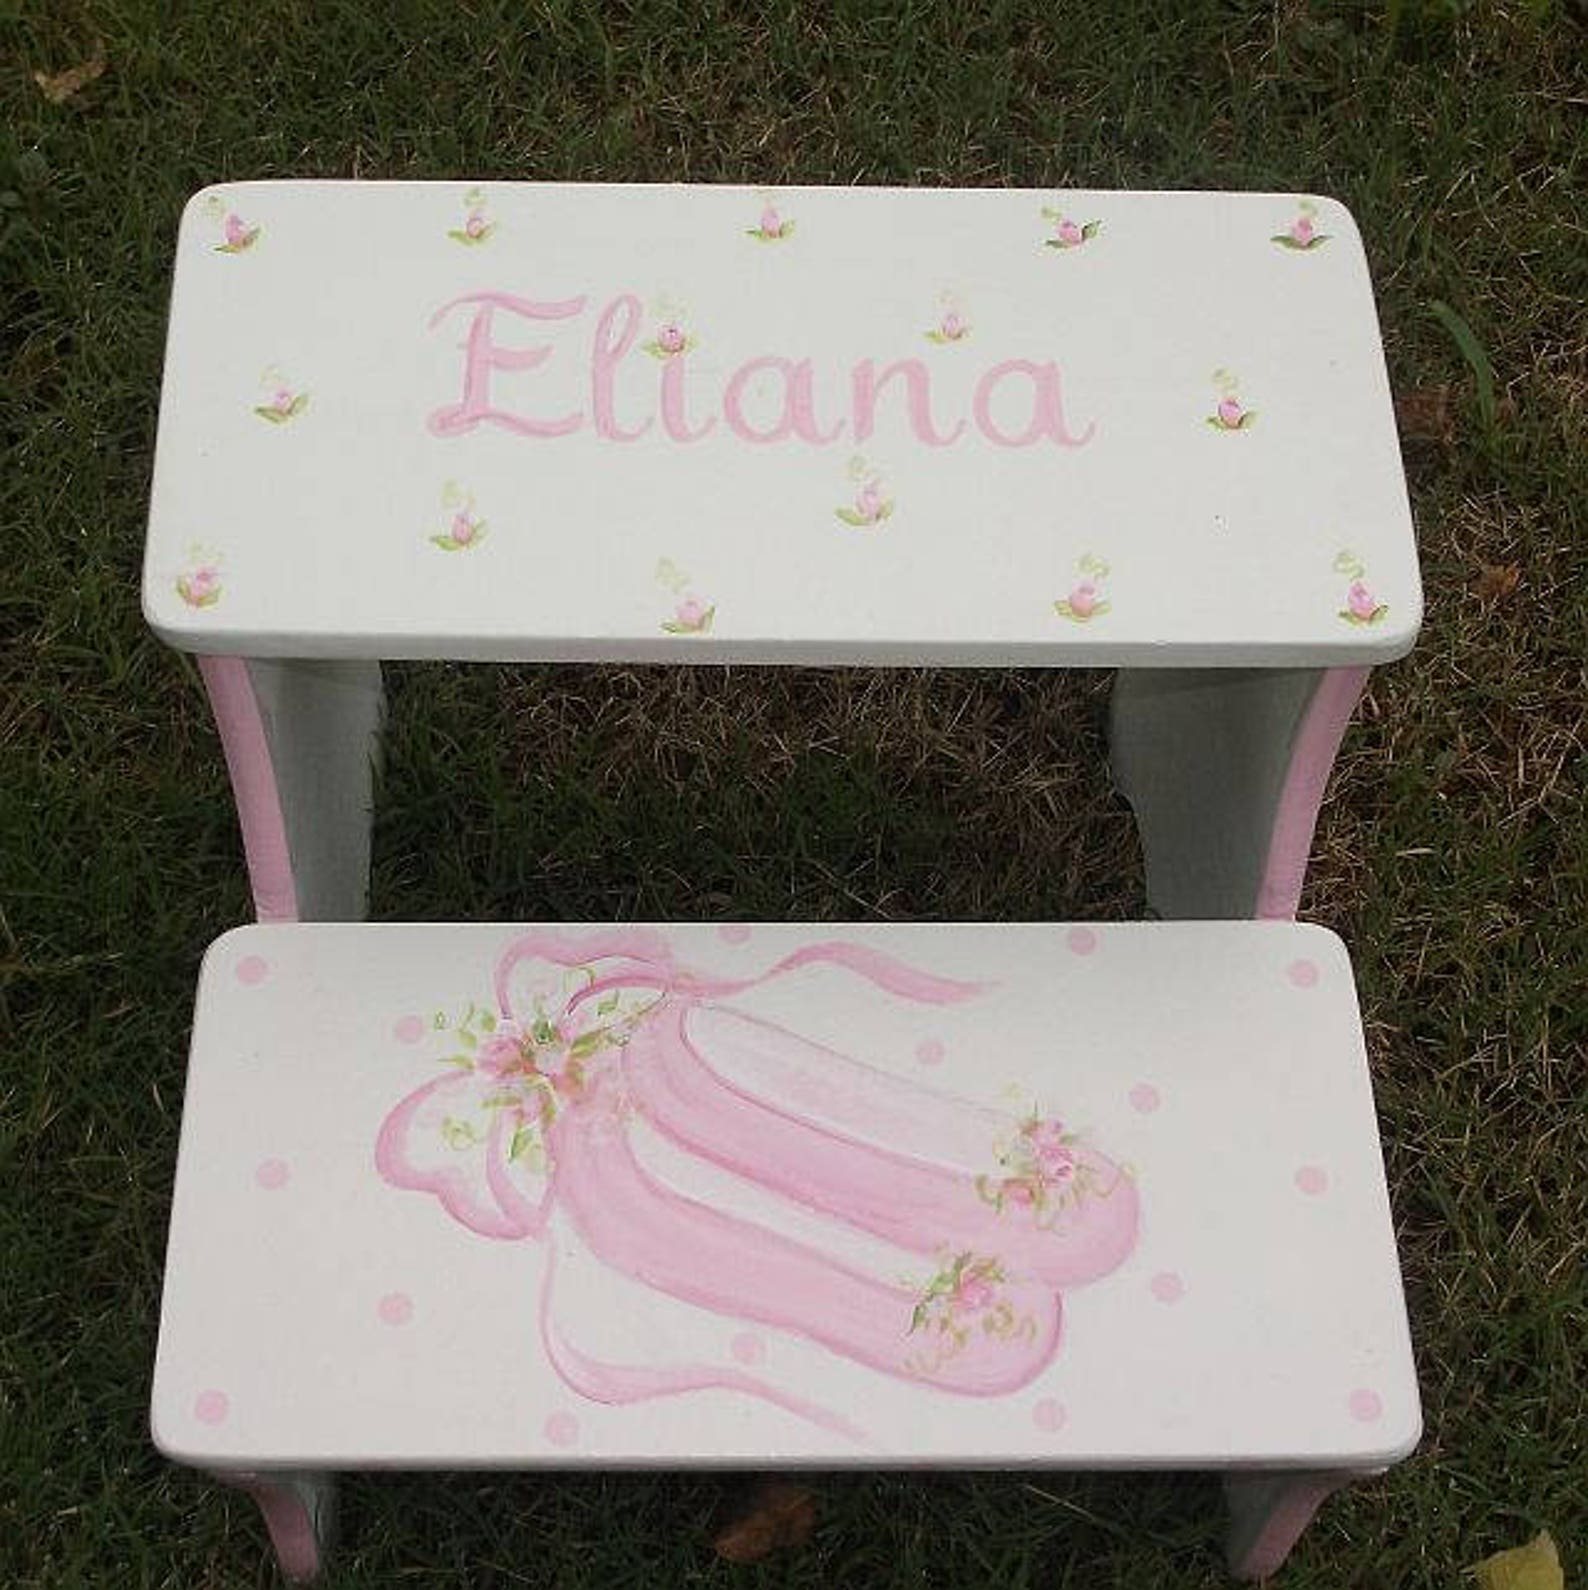 custom, pink, ballet, ballerina shoes, childs step stool, benches, bathroom stool, personalized gifts